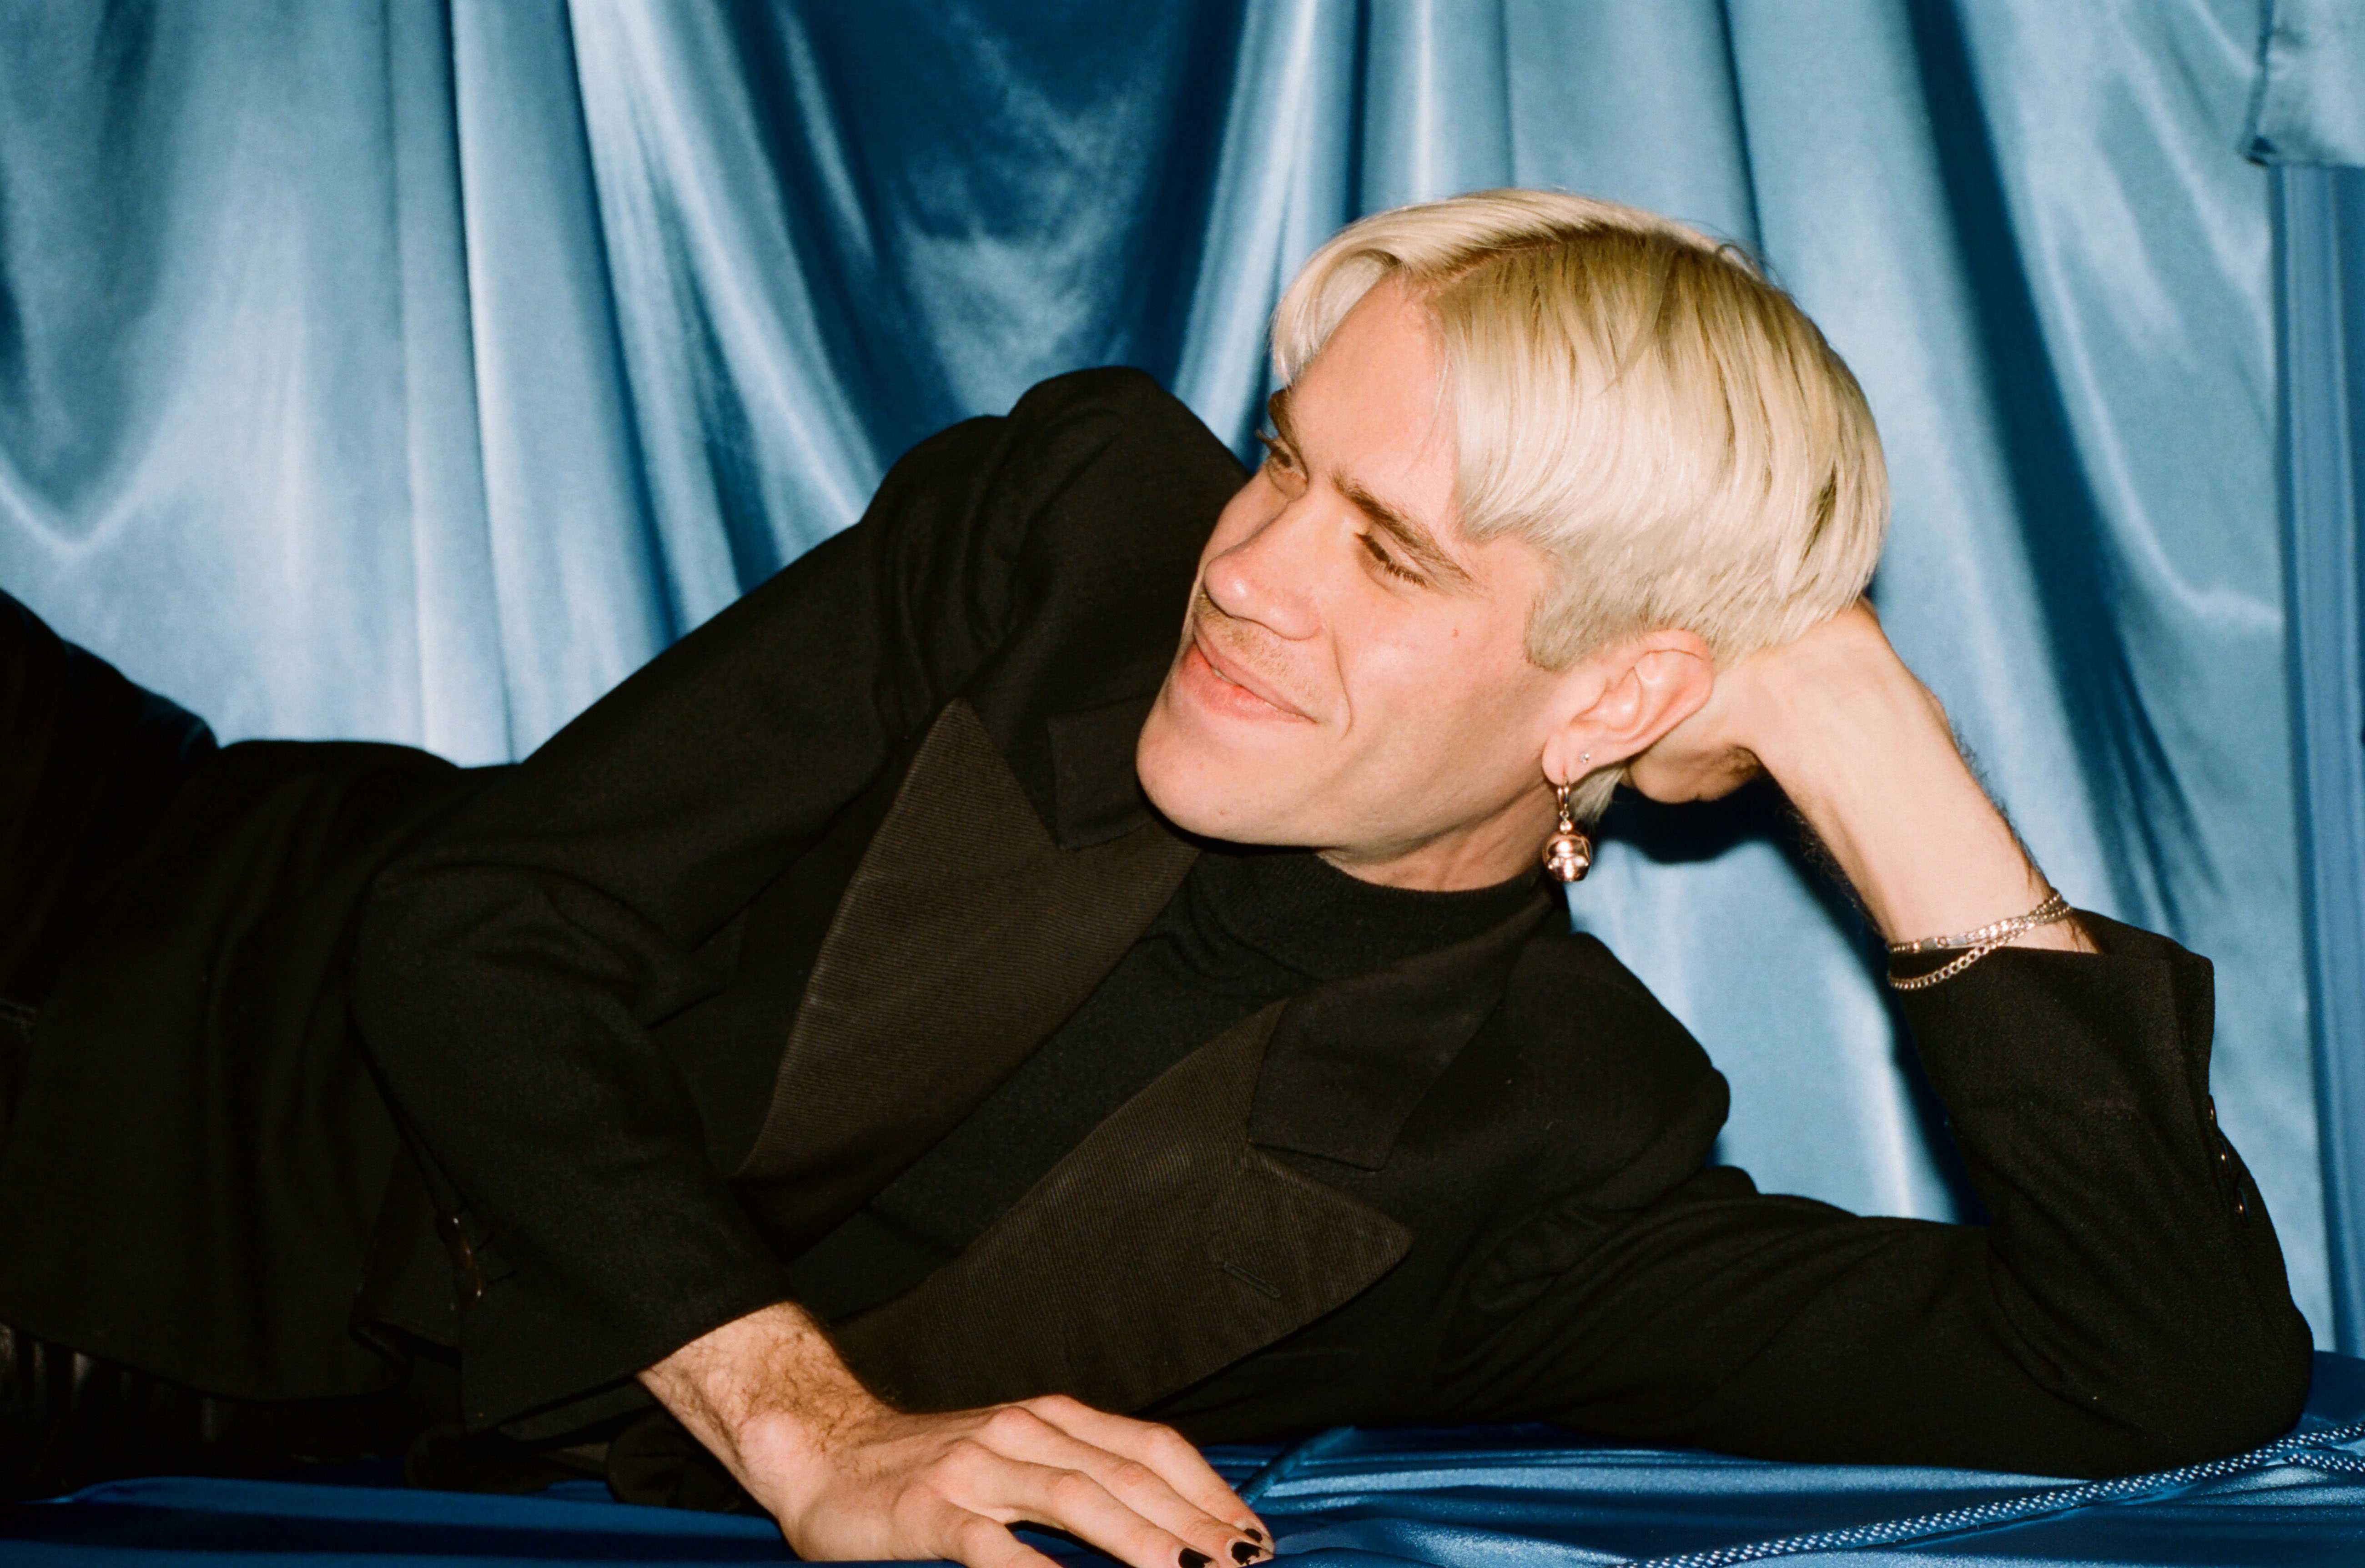 We interview Aaron Maine of Porches